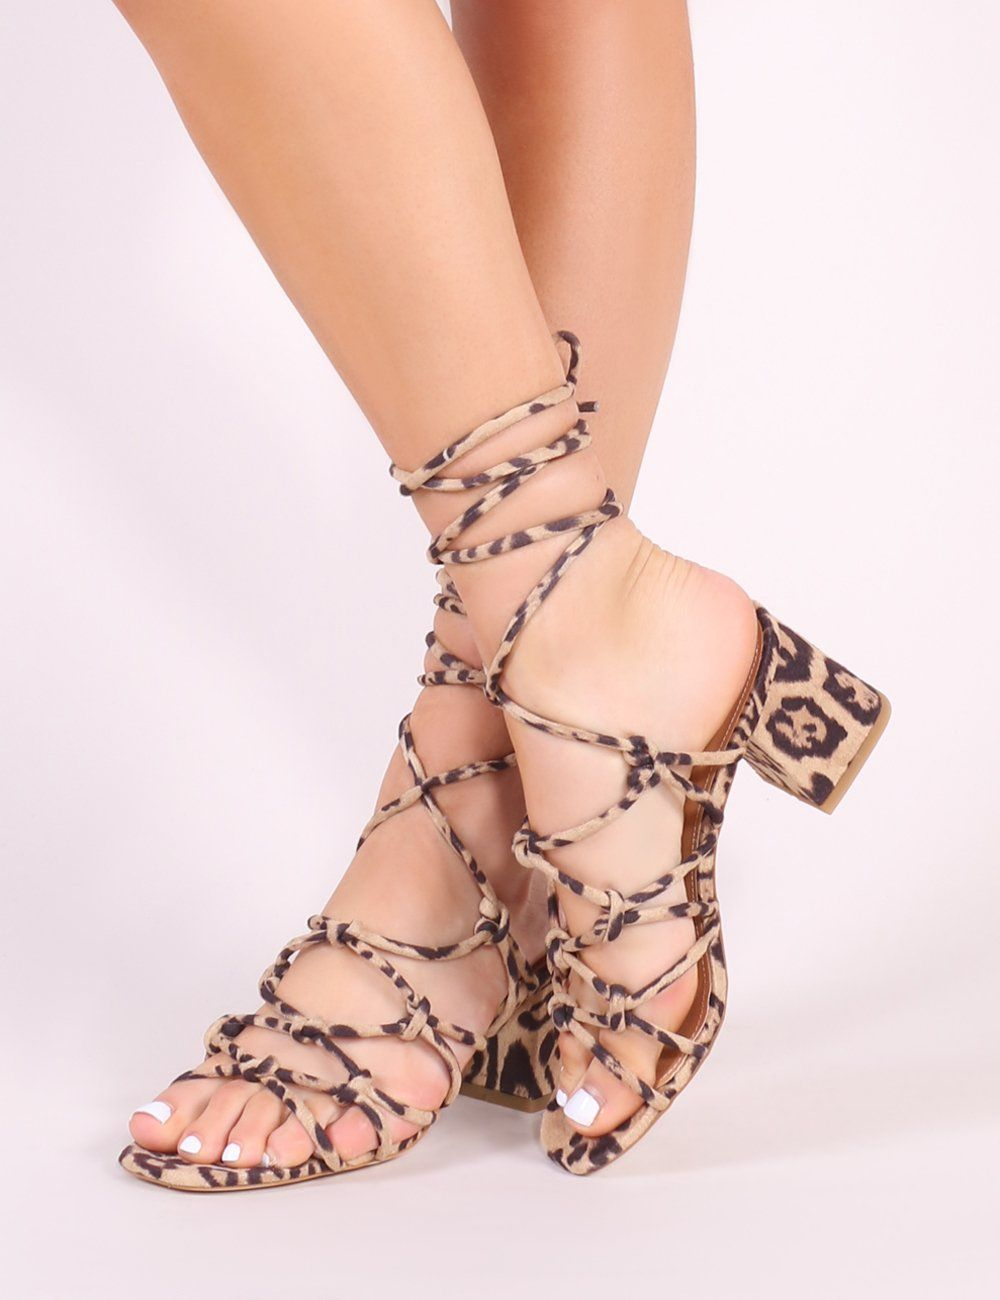 458f7083c00 Featuring strappy knotted design with a low block heel and lace up  detailing. Style with casual denim or a printed swing dress for warmer days.